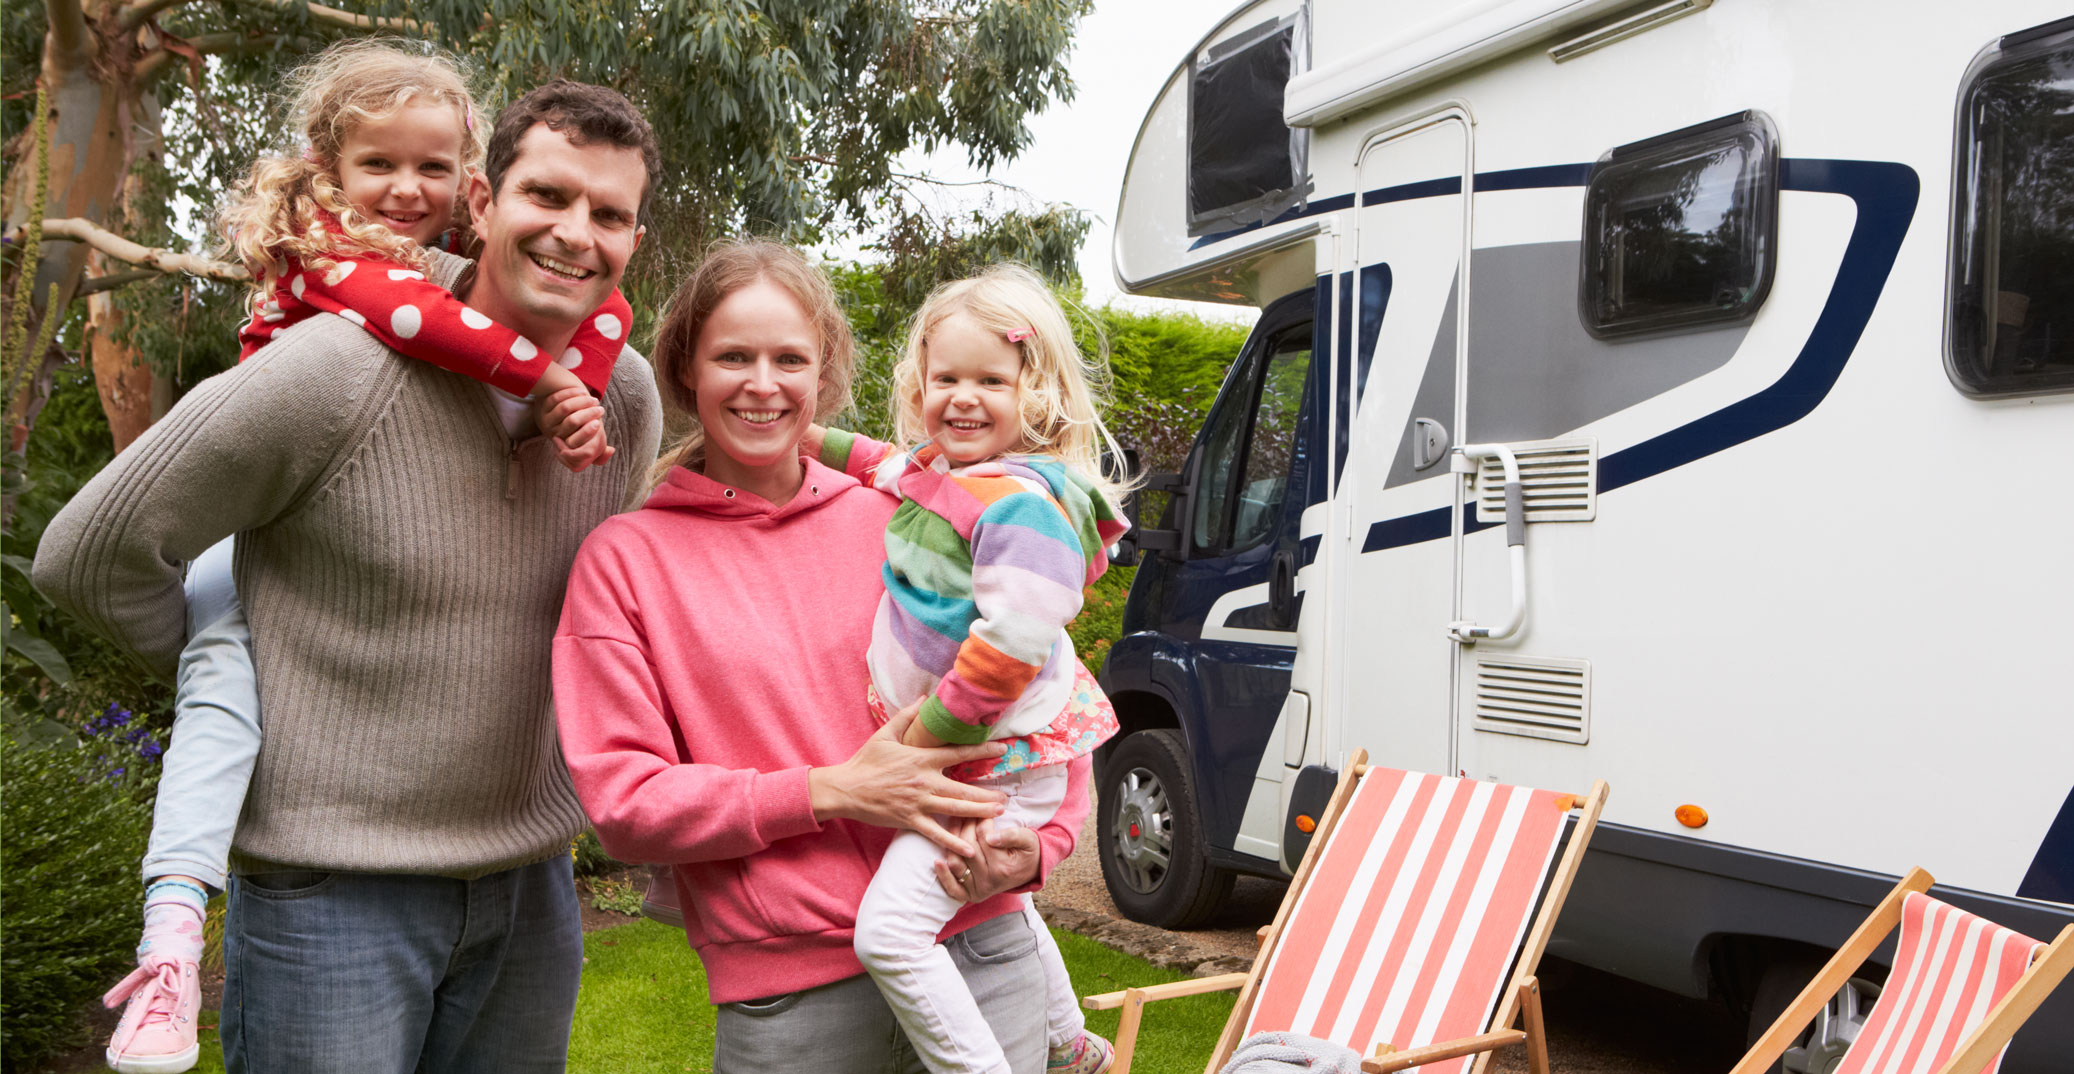 A family in front of their rental motor home